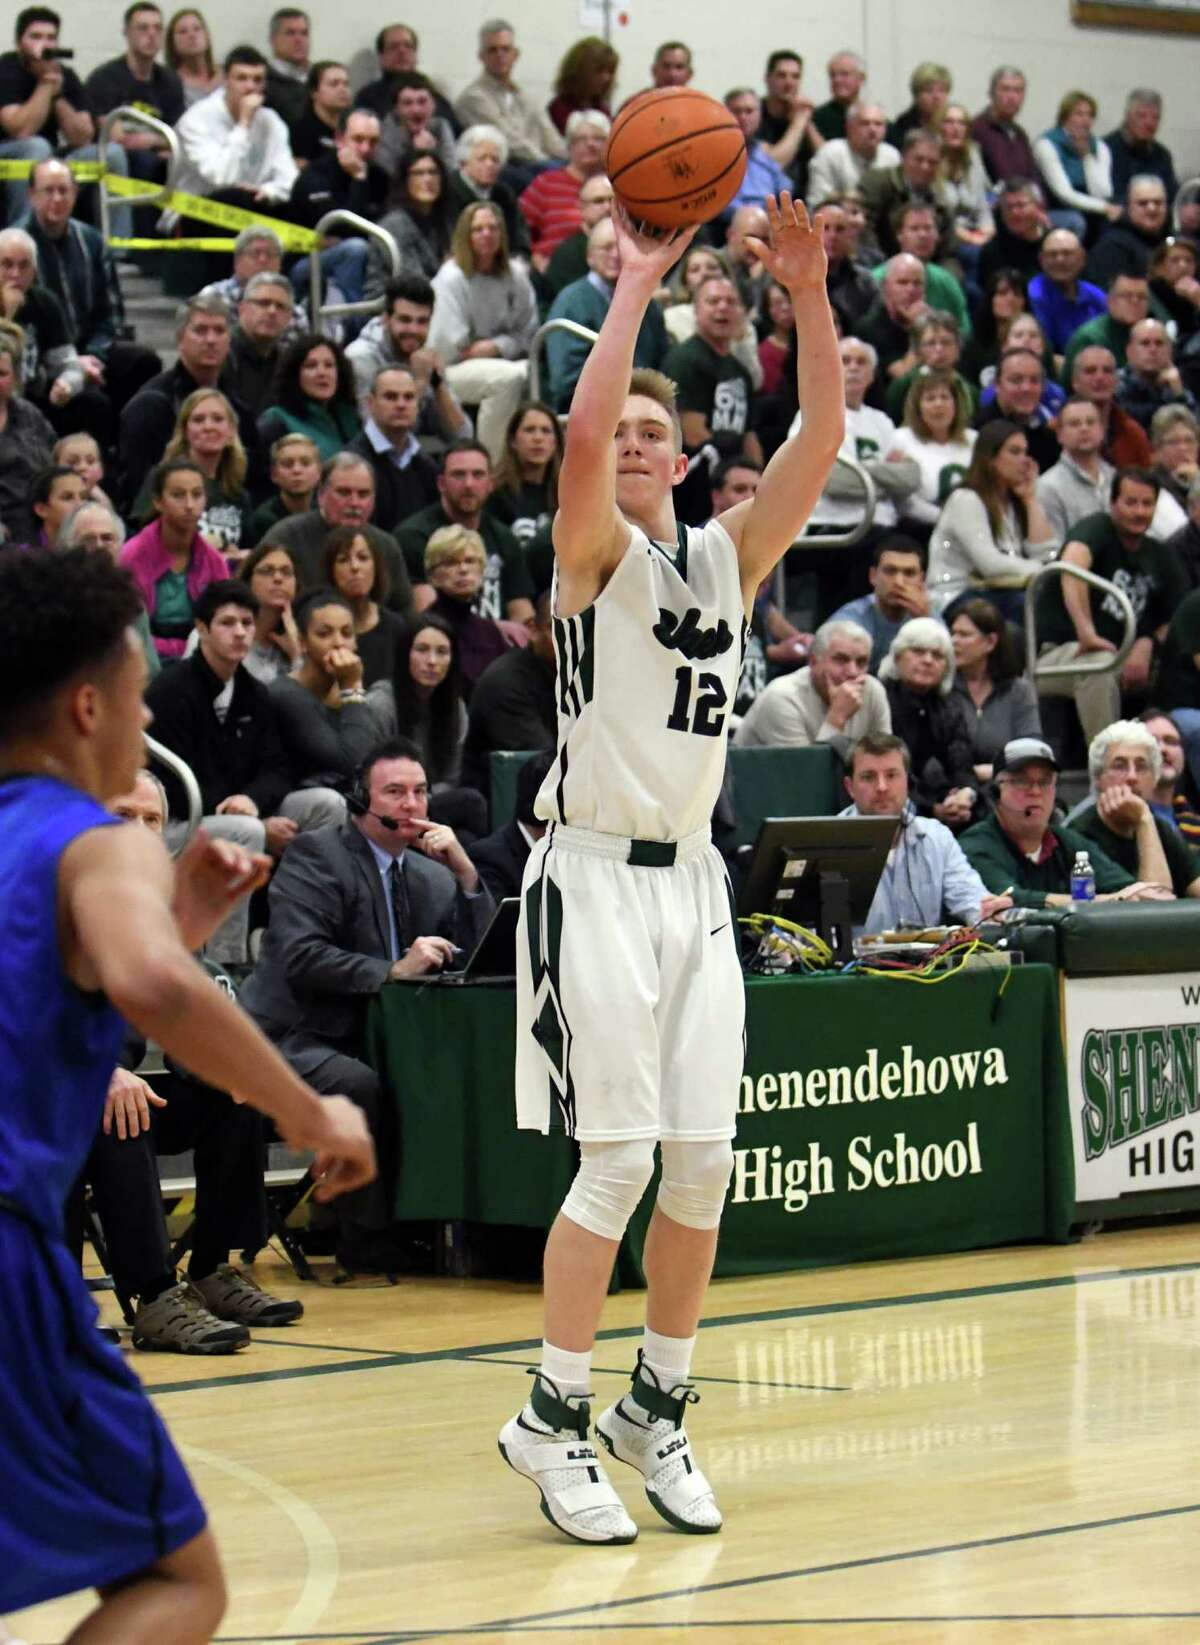 Shen's Jaia Benson puts up a three point shot during their boy's high school basketball game against Saratoga on Wednesday Dec. 21, 2016 in Clifton Park, N.Y. (Michael P. Farrell/Times Union)